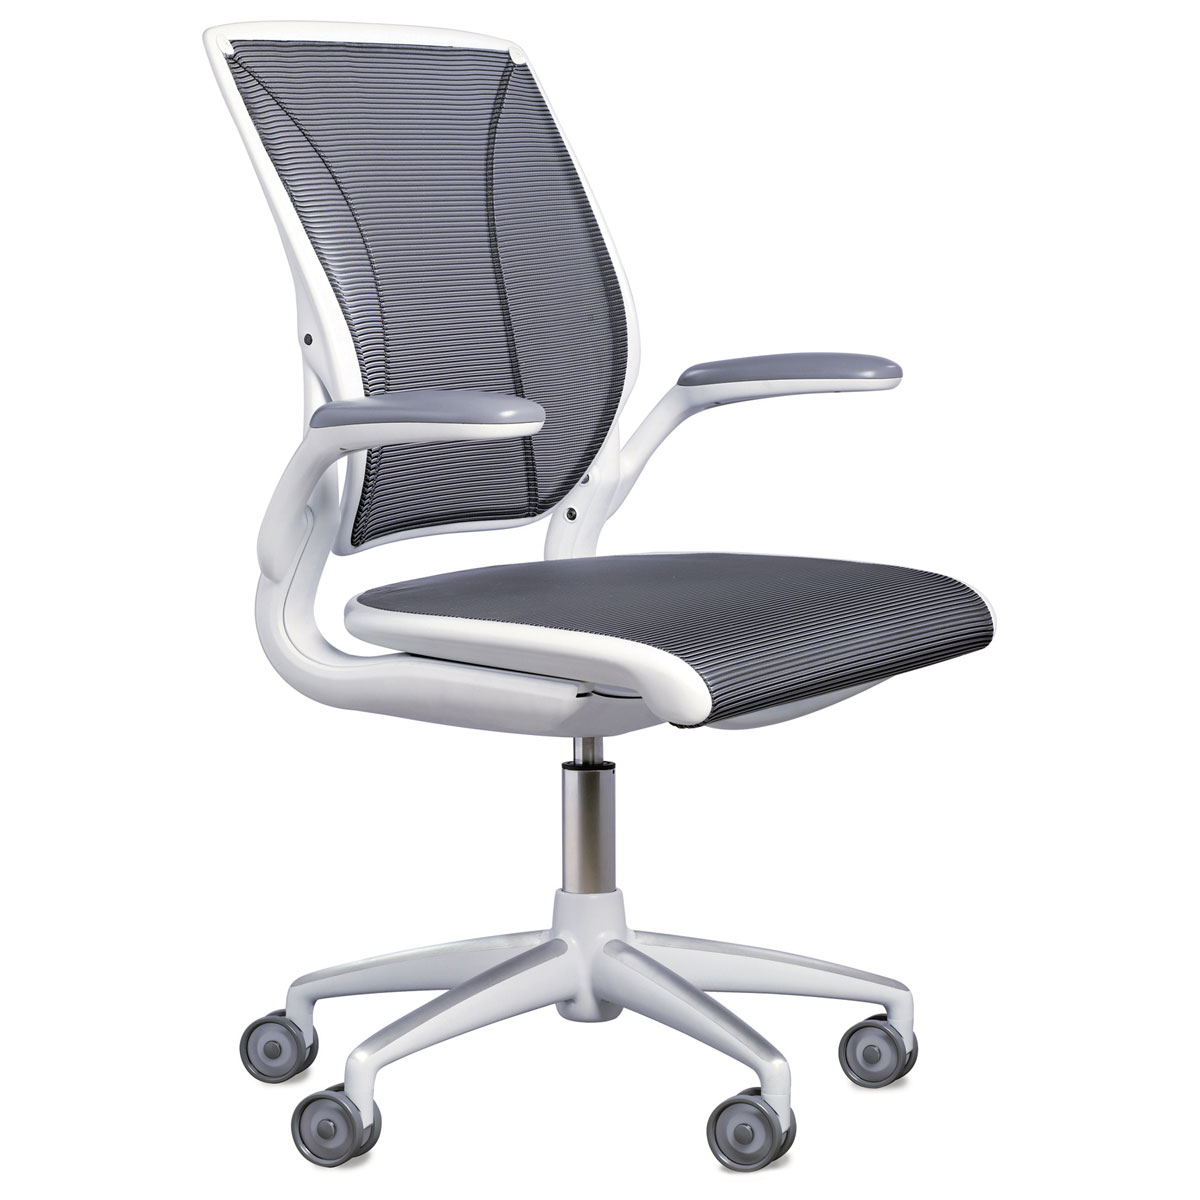 office chair with back support with Humanscale Diffrient World Task Chair Mesh on Ergonomic together with Ascot Bar Stool Charcoal Fabric further Sit Up Pillow further Wales likewise Subtle Sexuality.